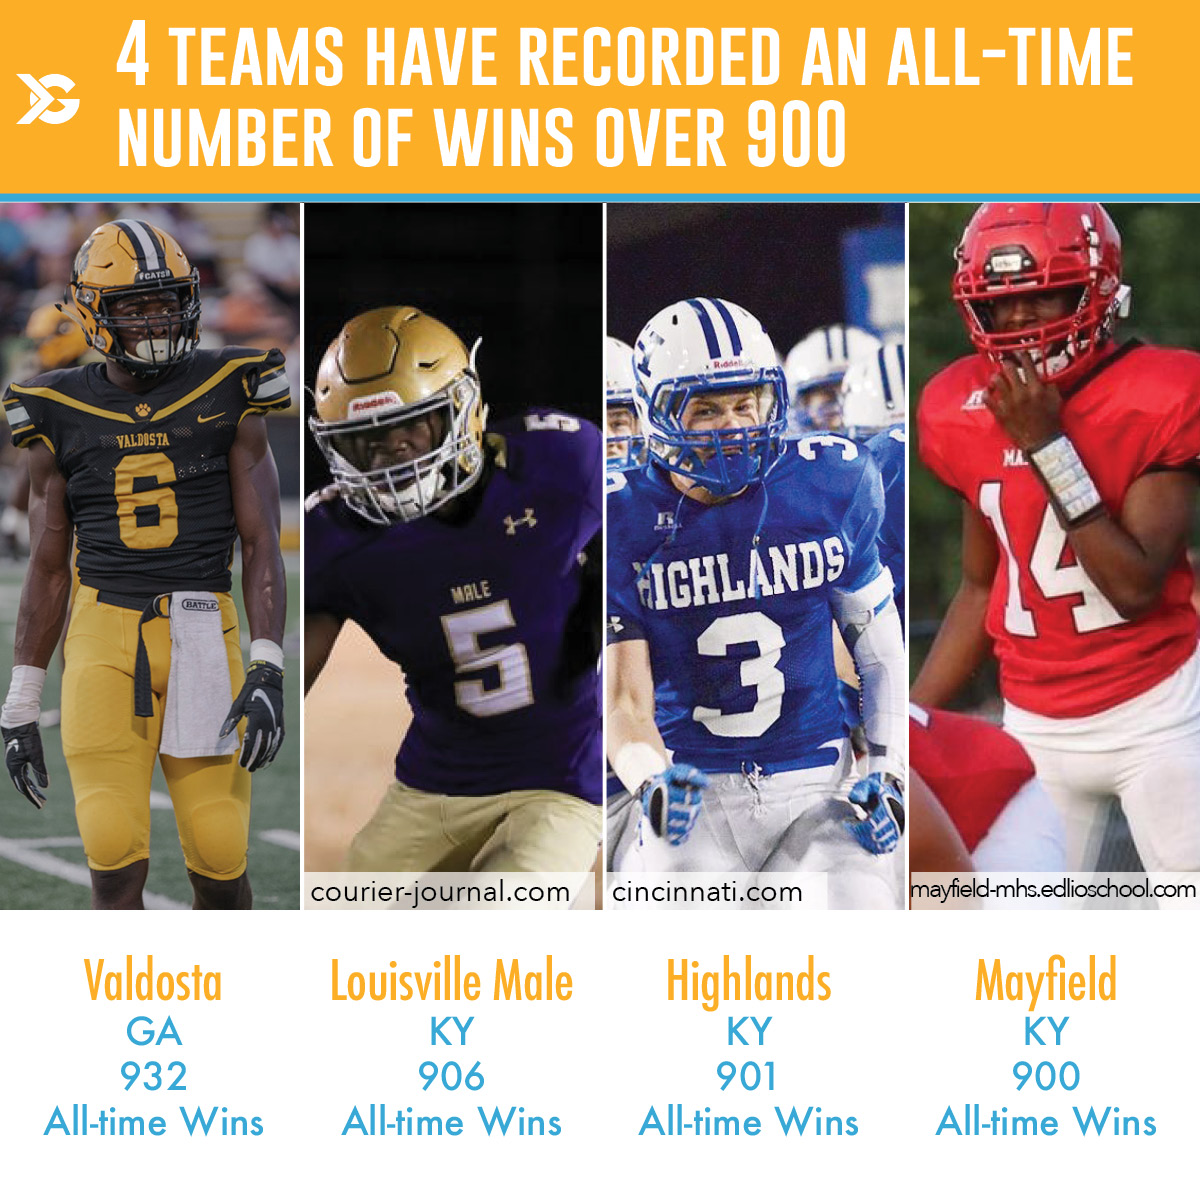 Here are the top 4 winningest high school football programs in U.S. history. Kentucky seems to be a hub of football talent, as it leads the way with three teams in the top 5. Even more impressive, four of these teams have recorded 900+ all-time wins.  . . . #highschool #winners https://t.co/FLeyUOzbYM